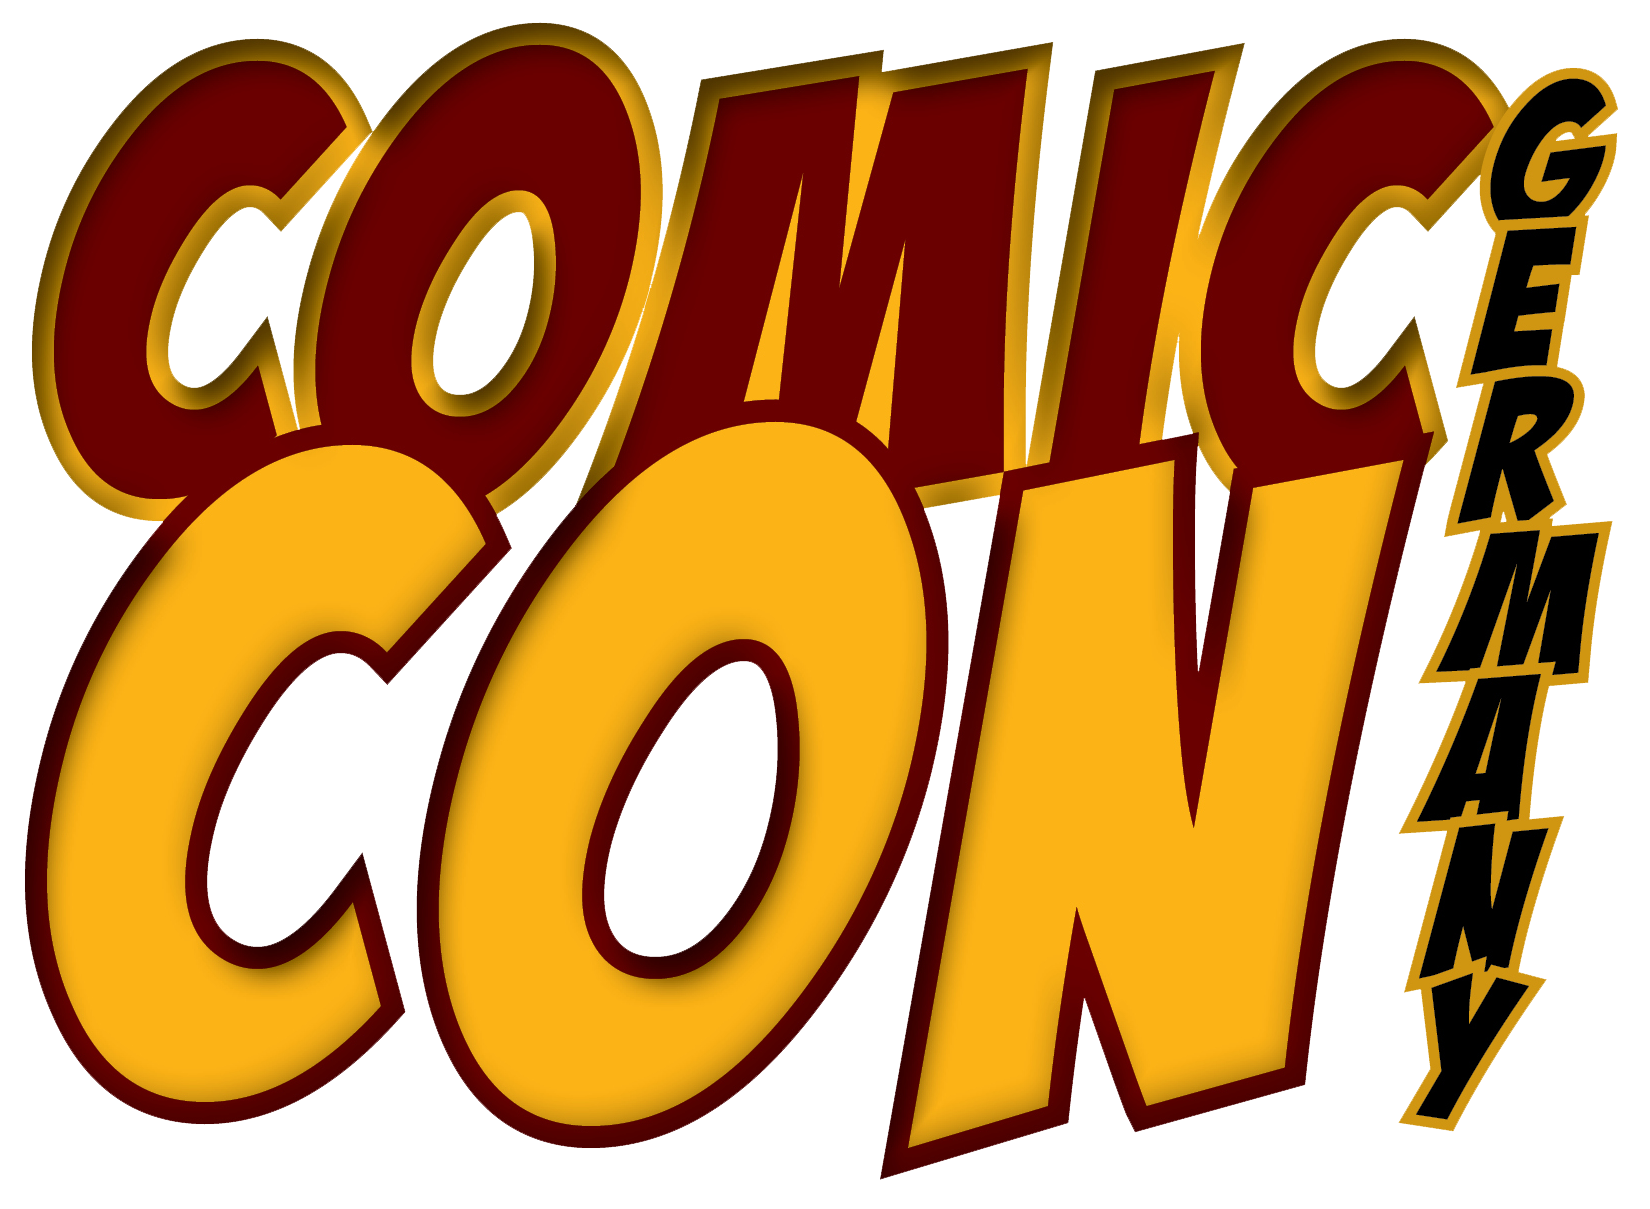 File:Comic con ger logo.png.